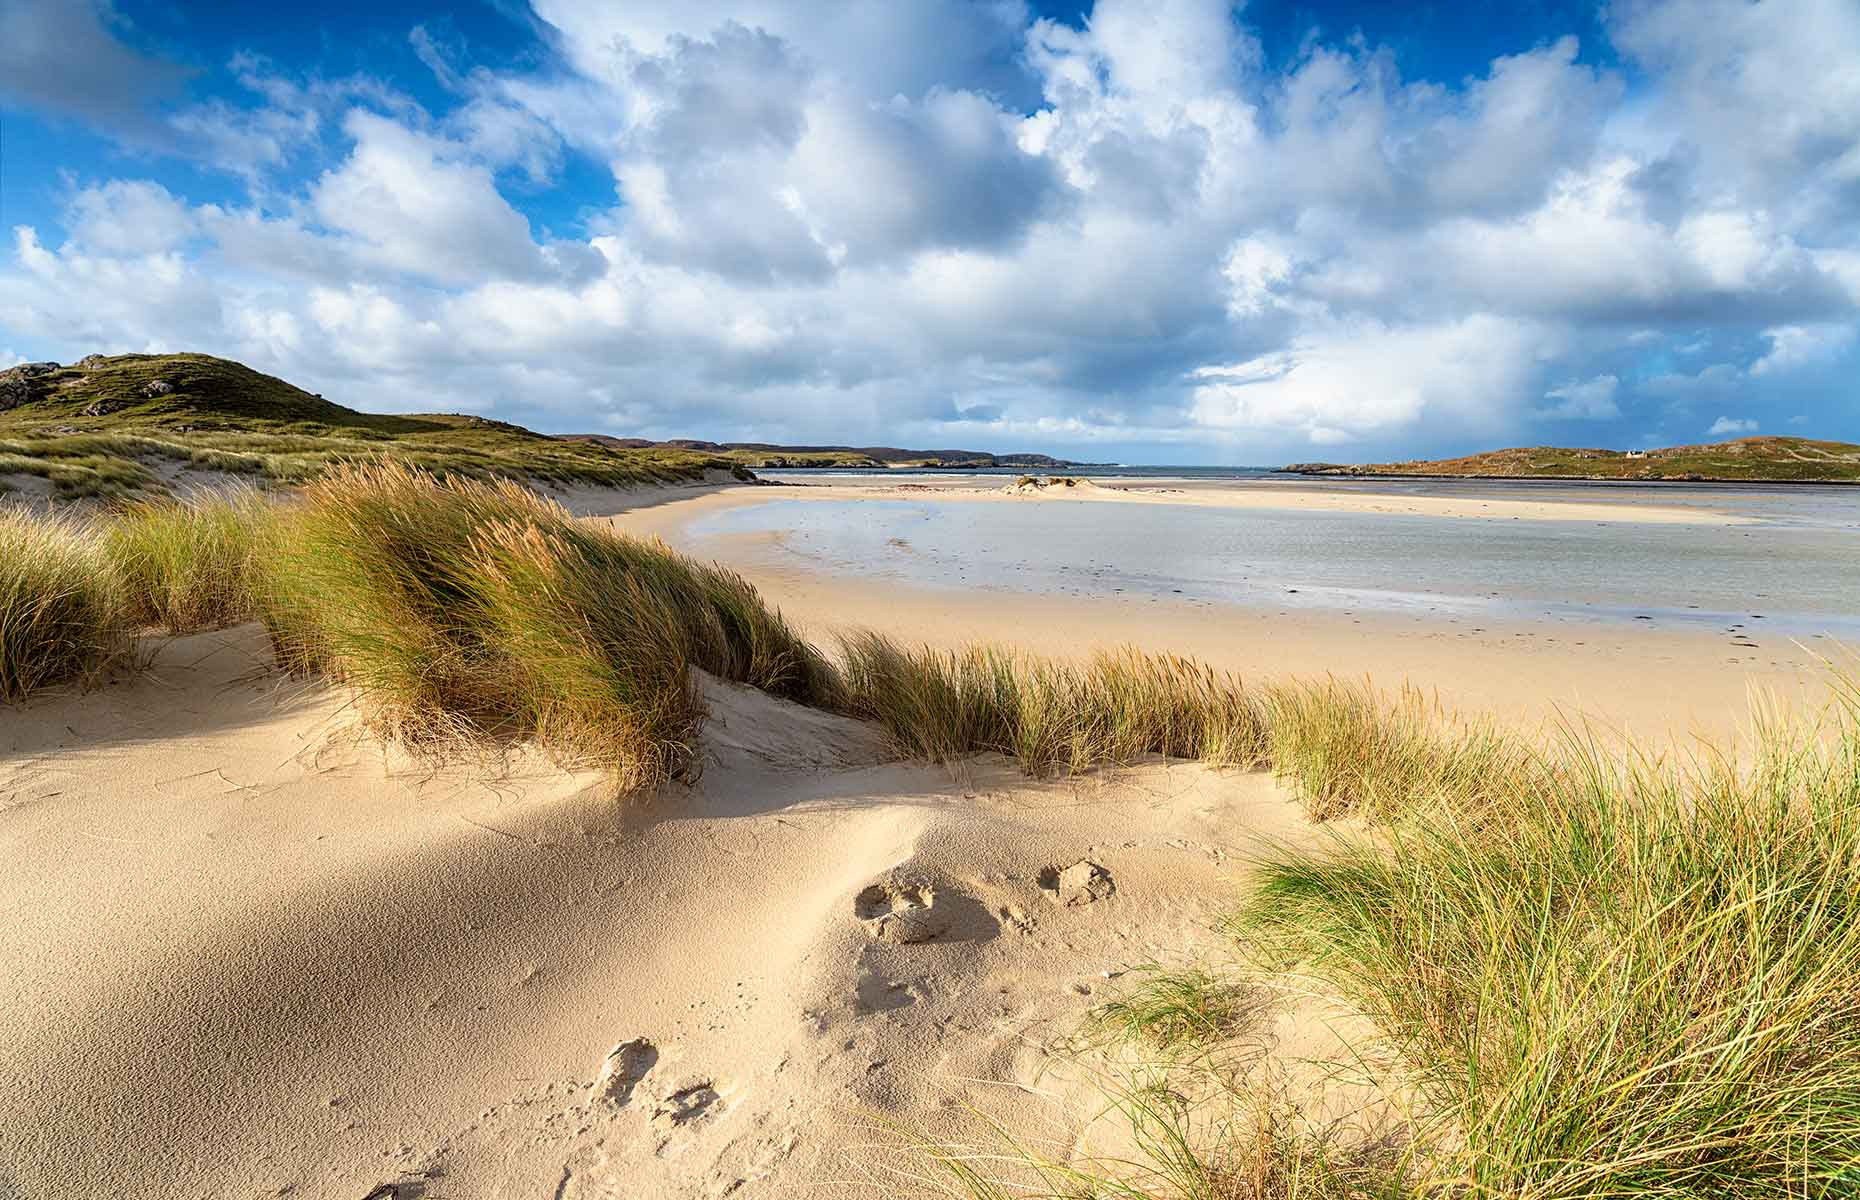 Uig Sands beach ar Ardroil on the Isle of Lewis (Image: Helen Hotson/Shutterstock)